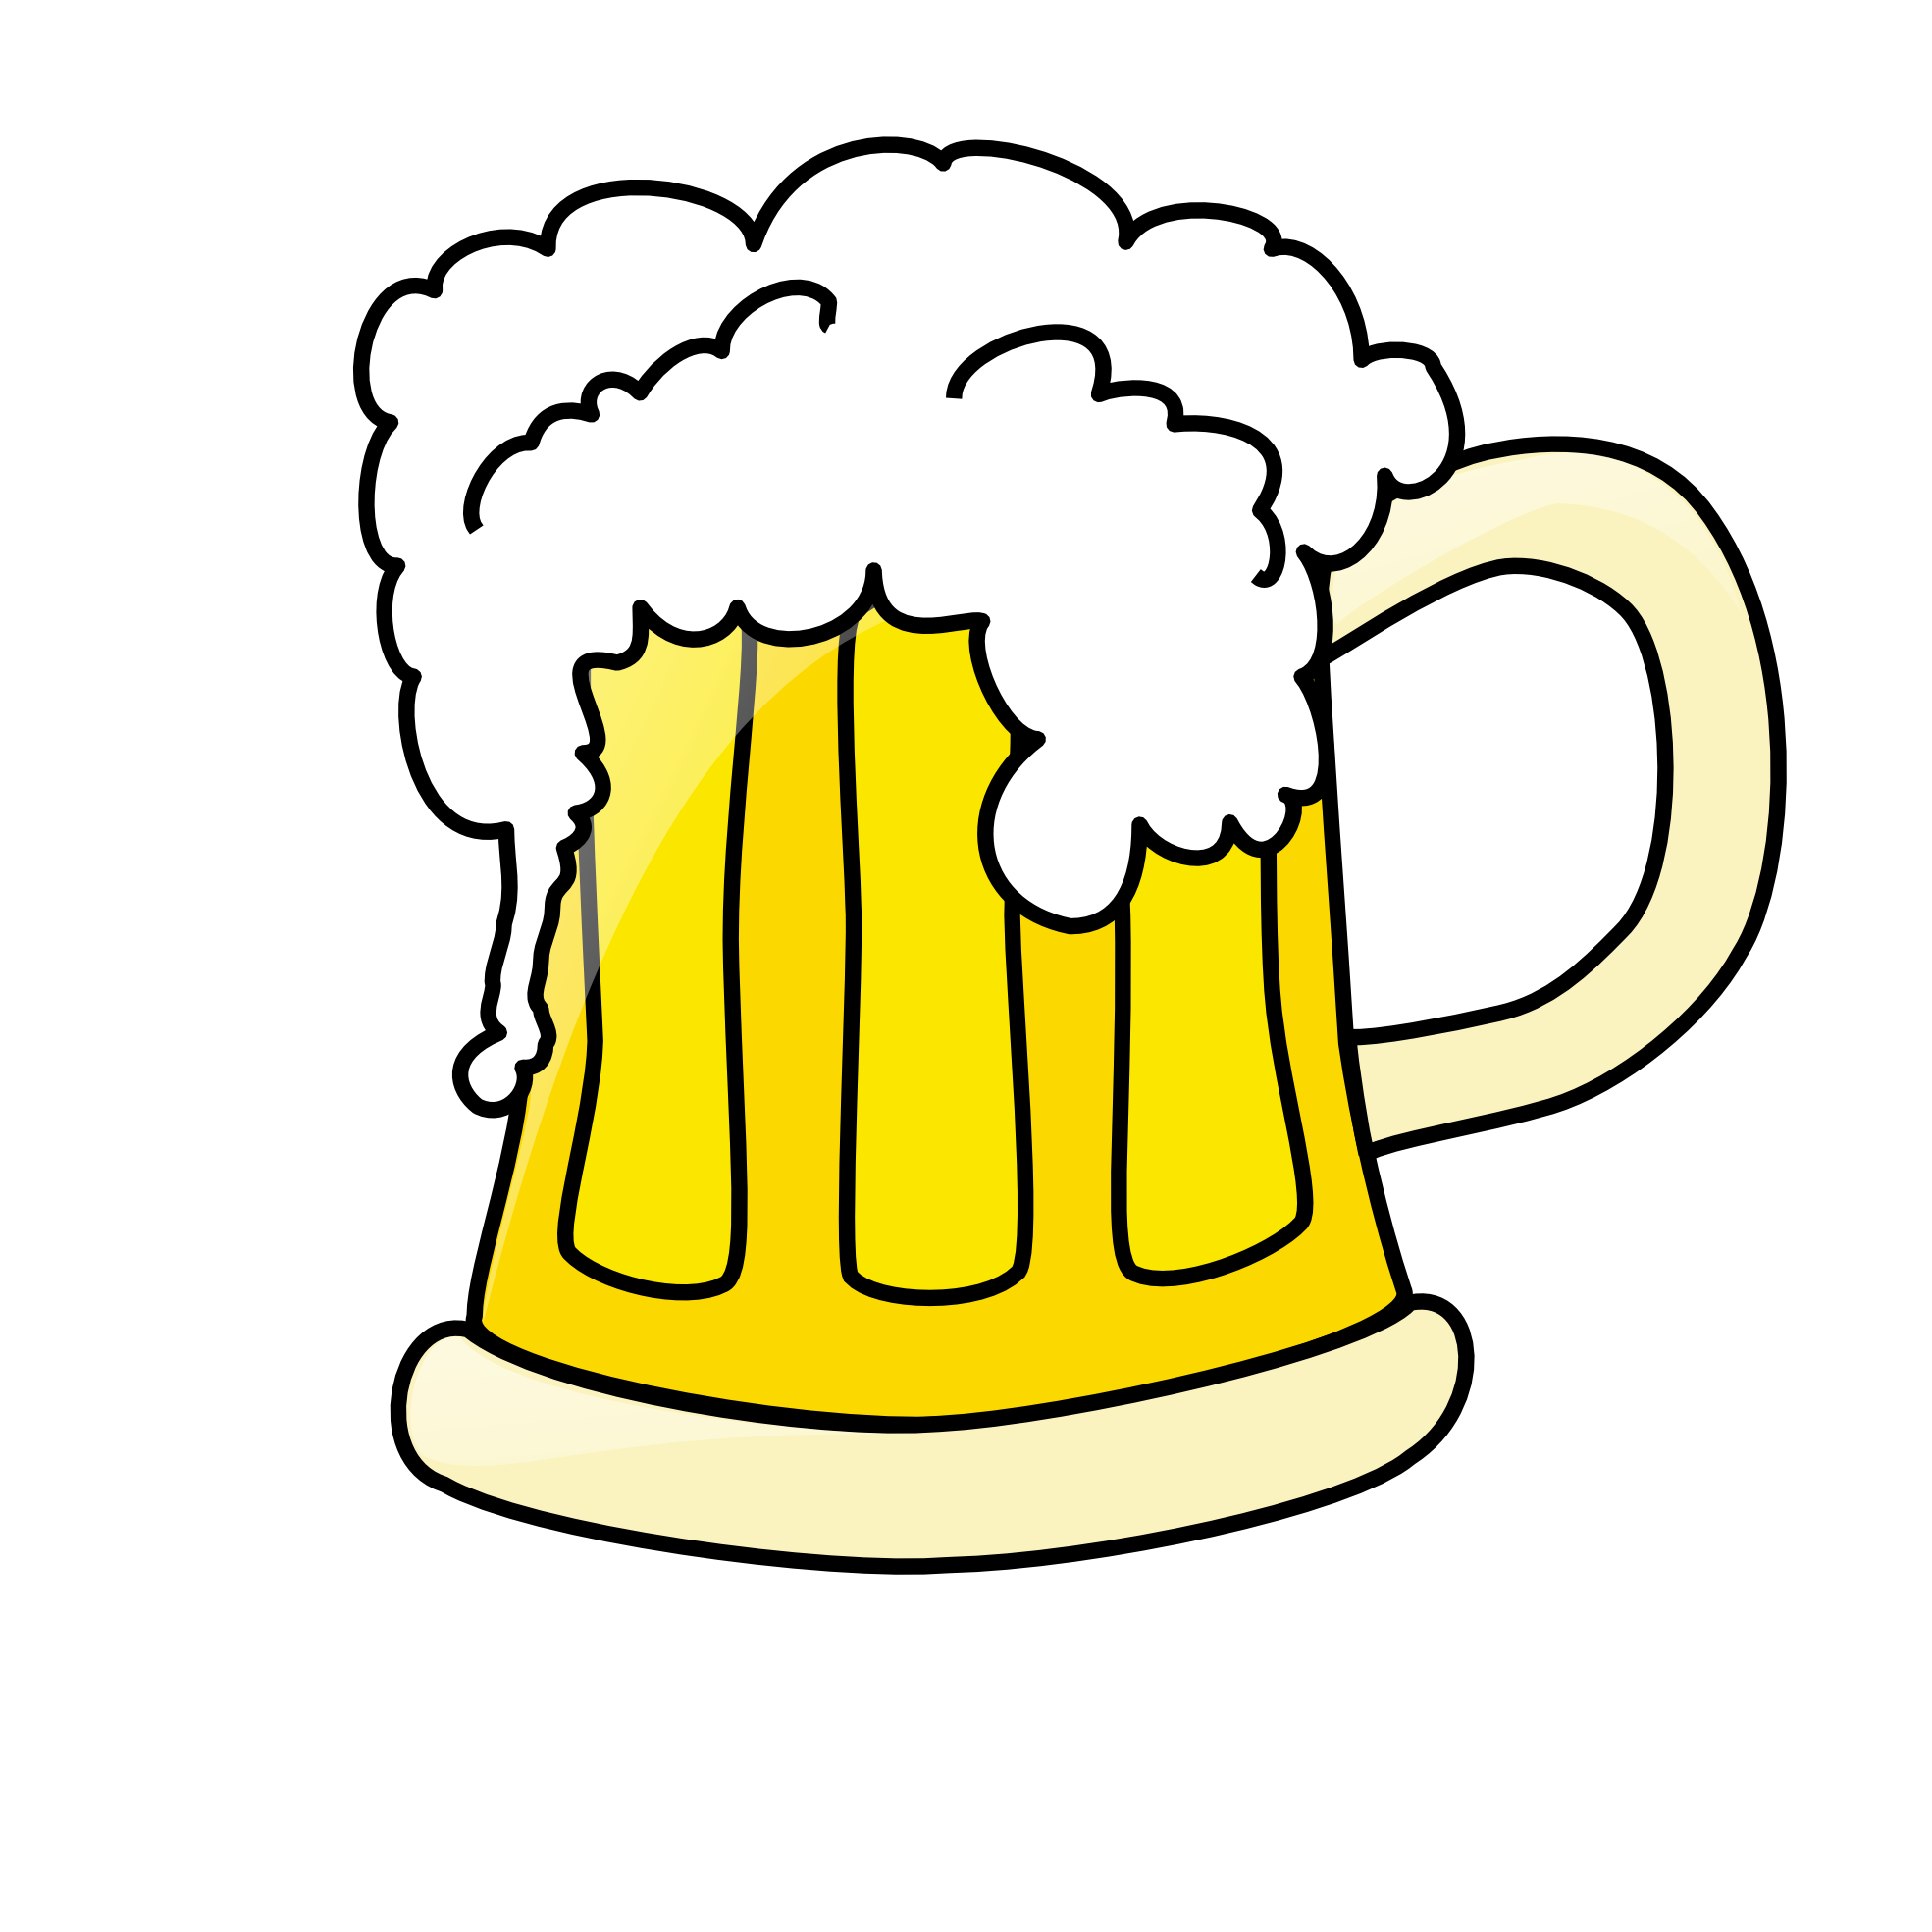 Pictures Of Full Beer Mugs Cheers Clipart Best